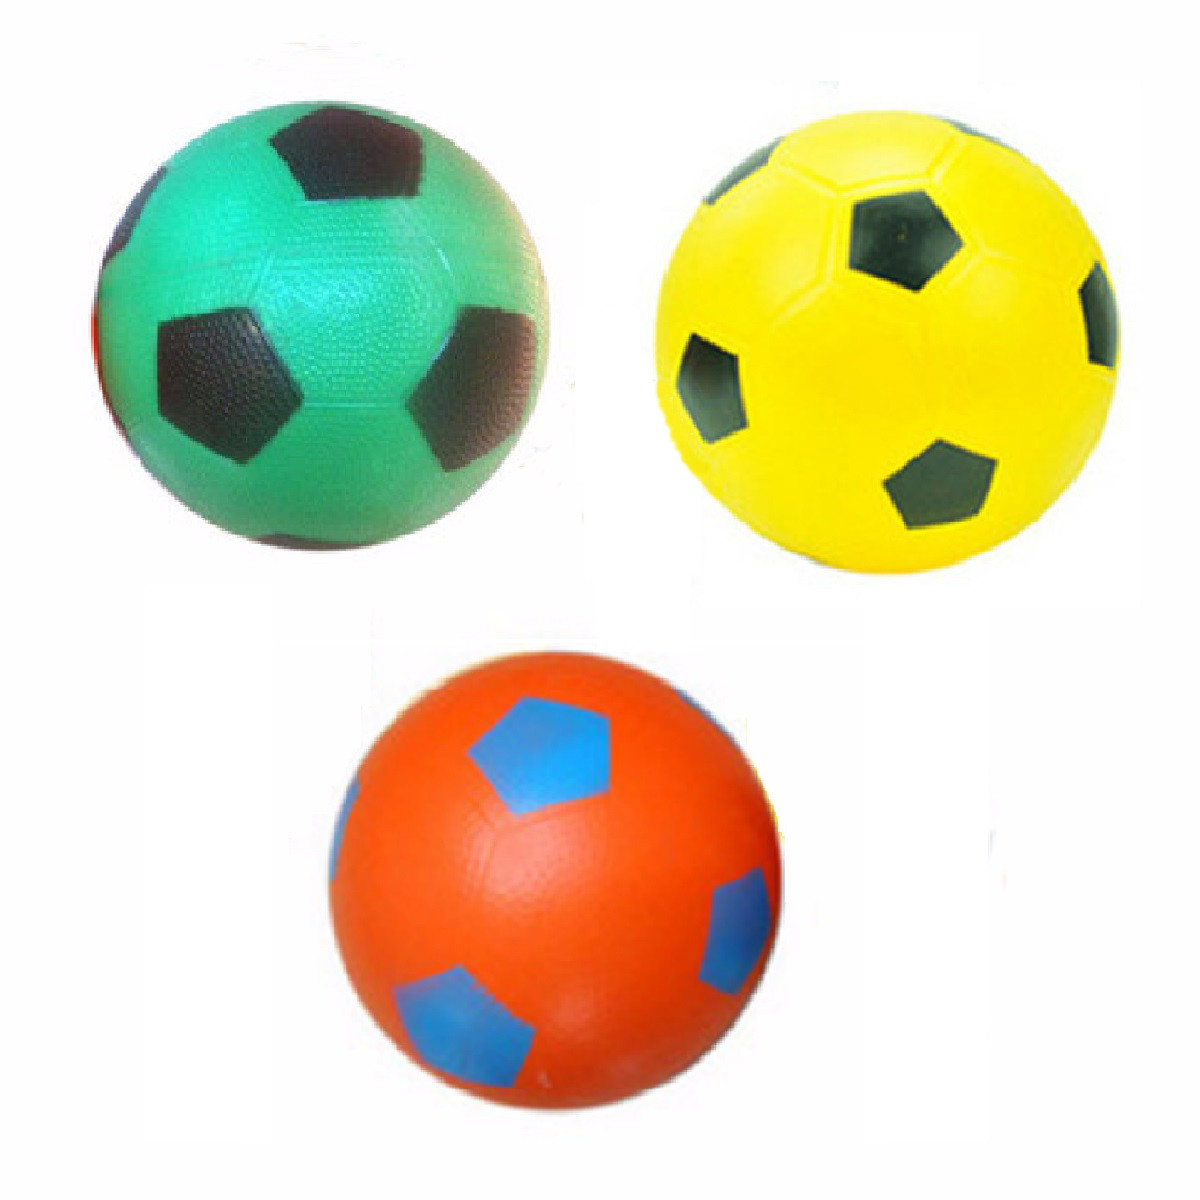 8-12cm Inflatable Football Basketball Beach Swimming Pool Soccer Ball Holiday Party Game Kids Toy Gift For Children Plastic Ball(China (Mainland))